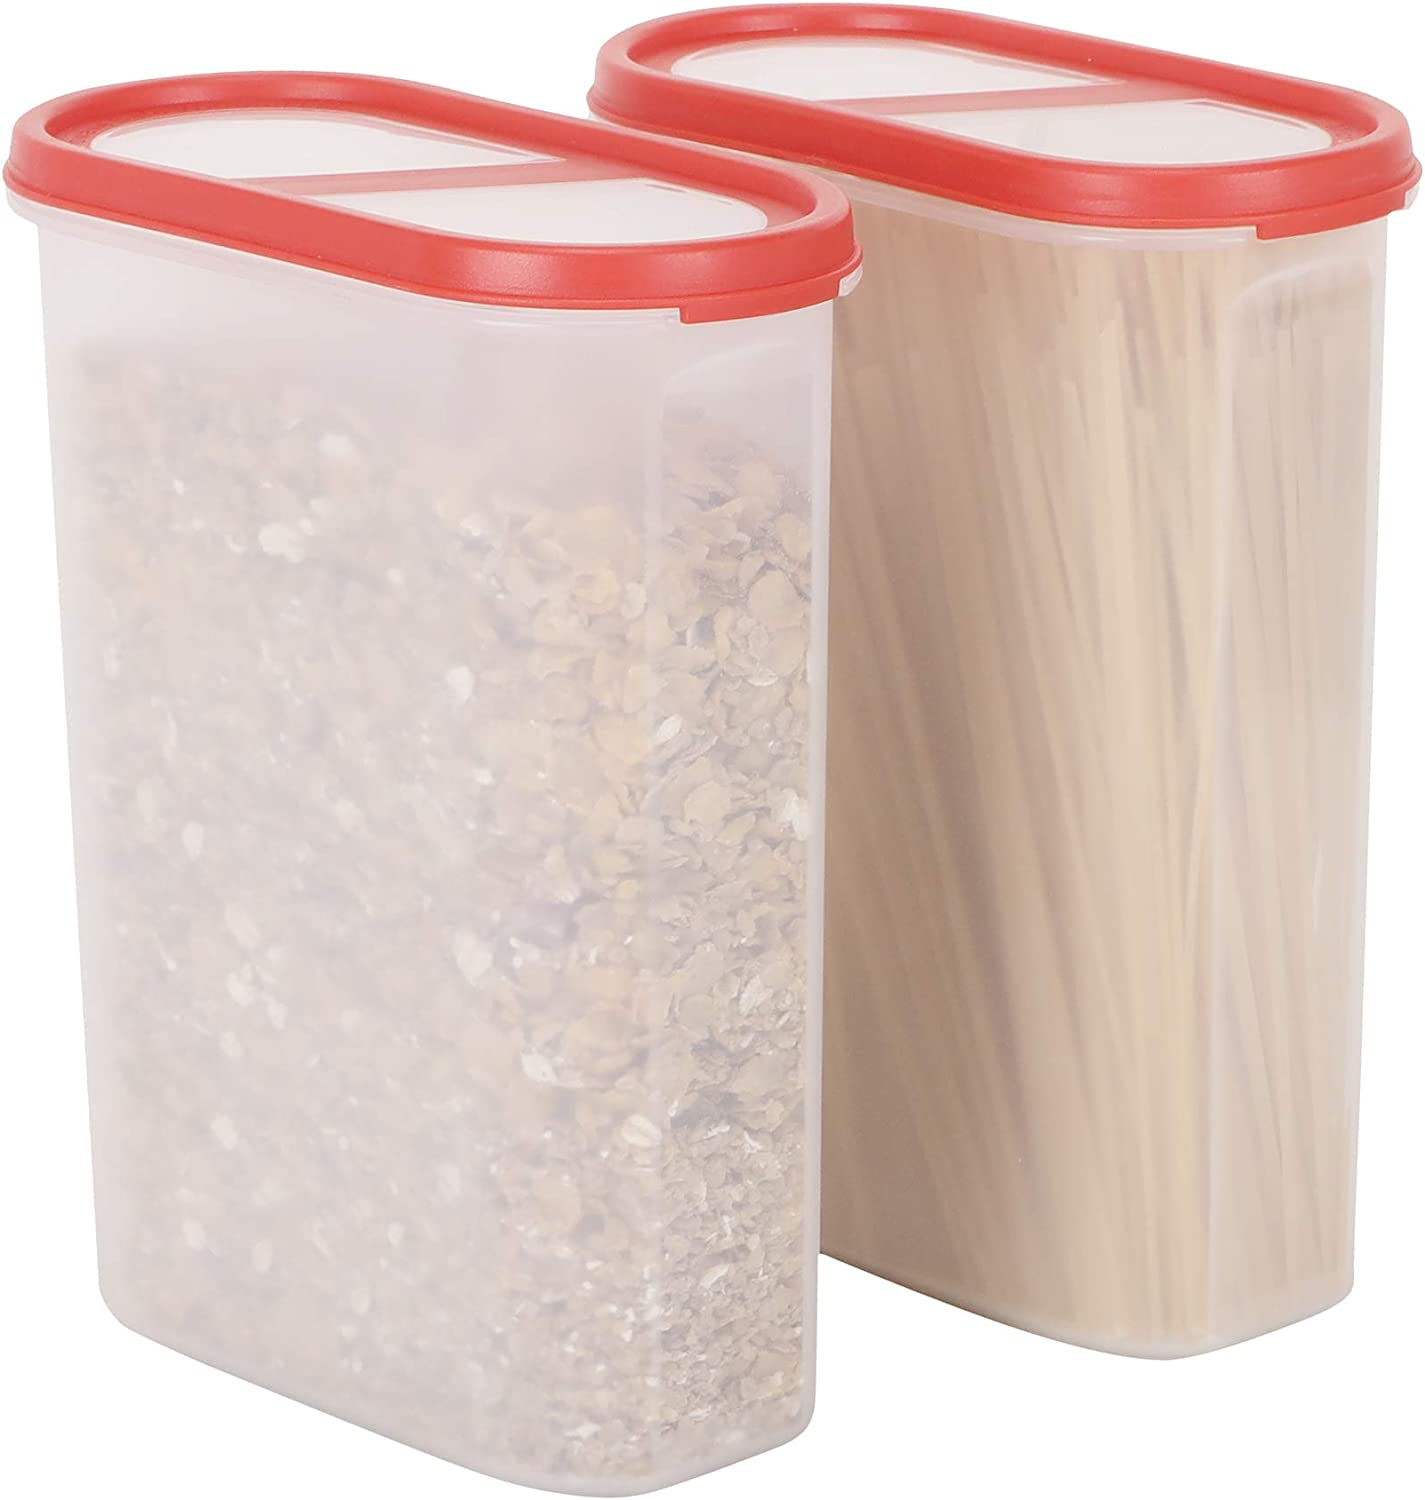 SIMPARTE Cereal Container | Pantry Airtight Food Storage Containers |10 Cup|2 Container Set|Microwave & Dishwasher Safe|BPA Free||Freezer Safe | Space Saver Modular Design Red Lids